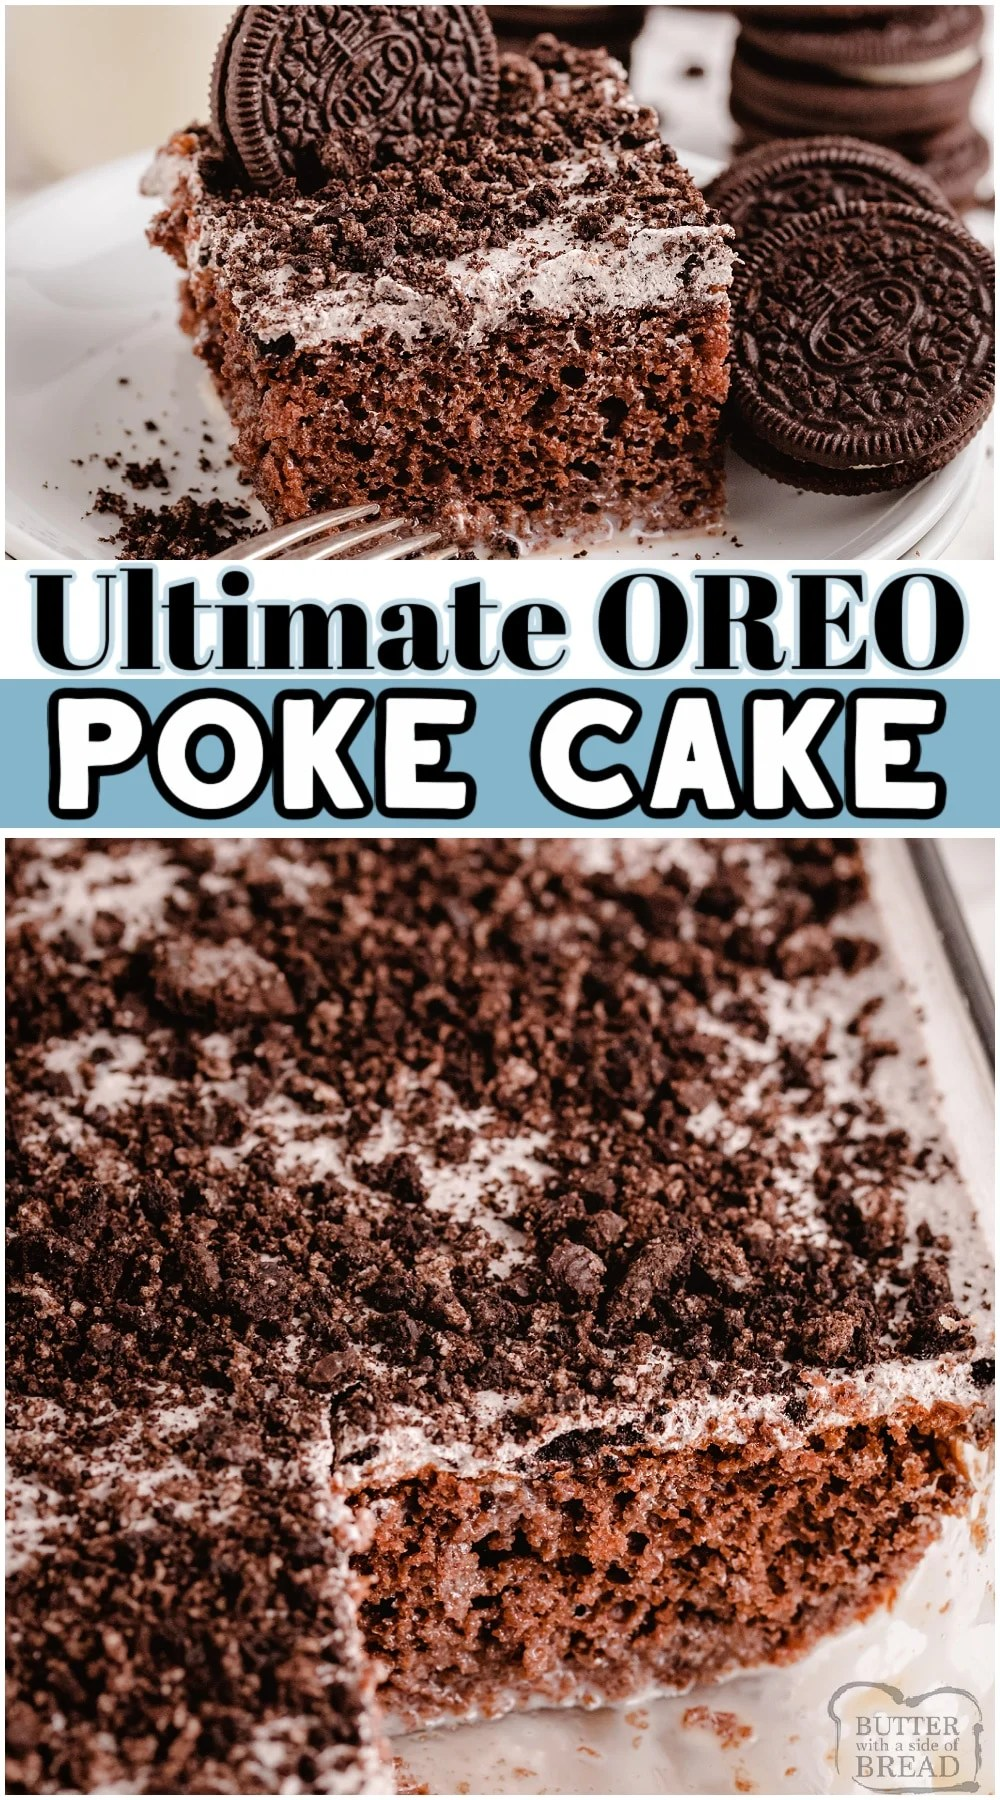 Oreo Poke Cake made with a chocolate cake mix, drizzled with condensed milk and a whipped cookies & cream topping. Everyone goes crazy for this tasty poke cake.